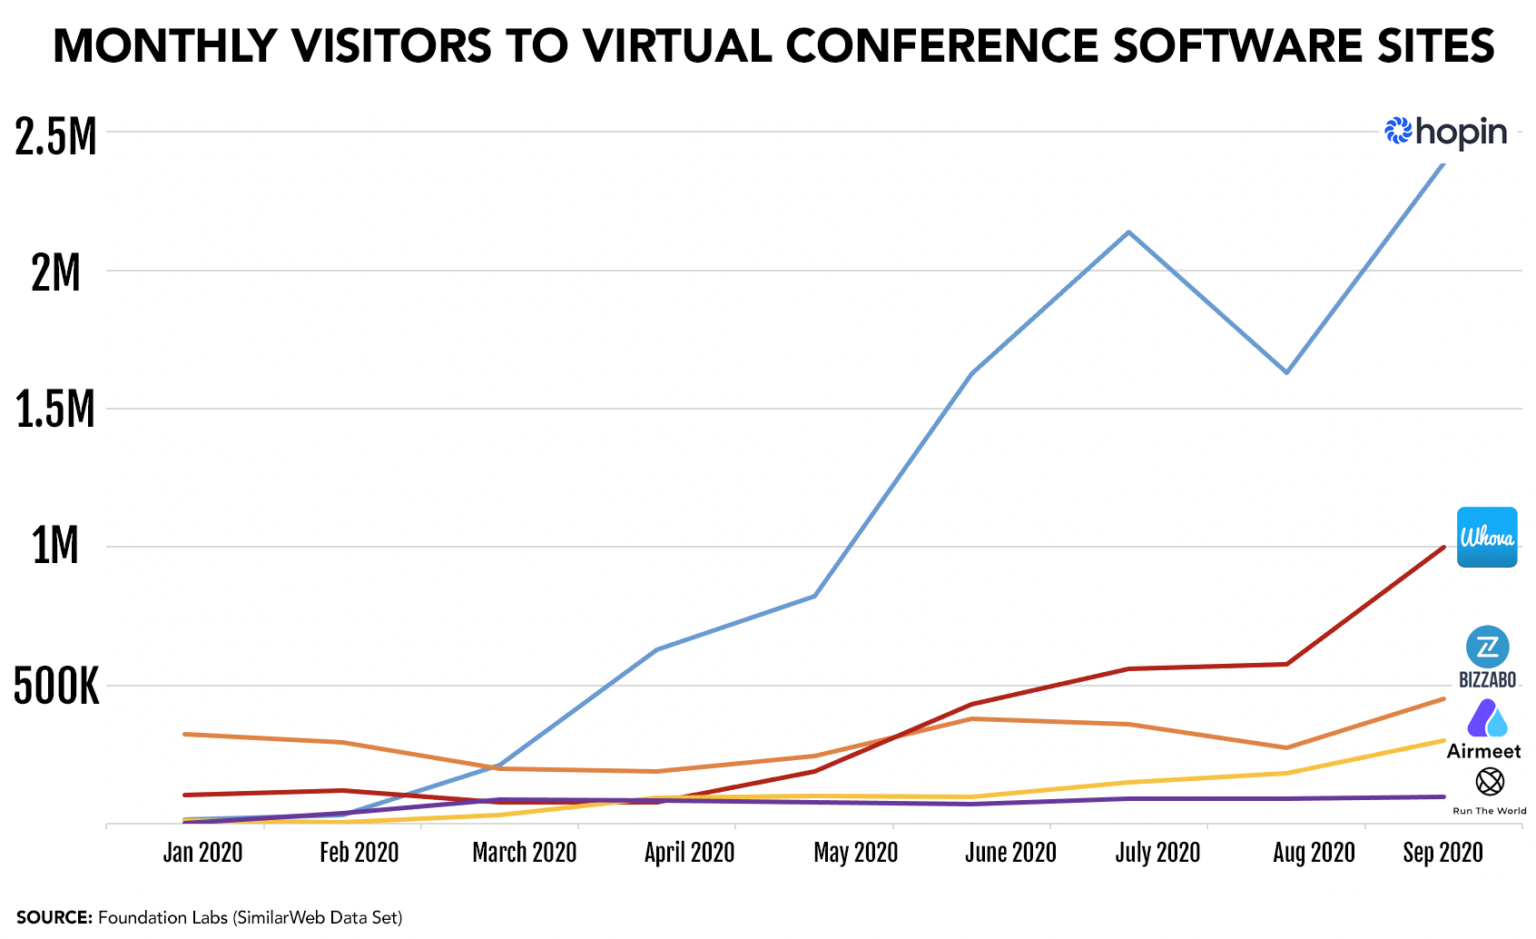 Monthly visitors to virtual software websites